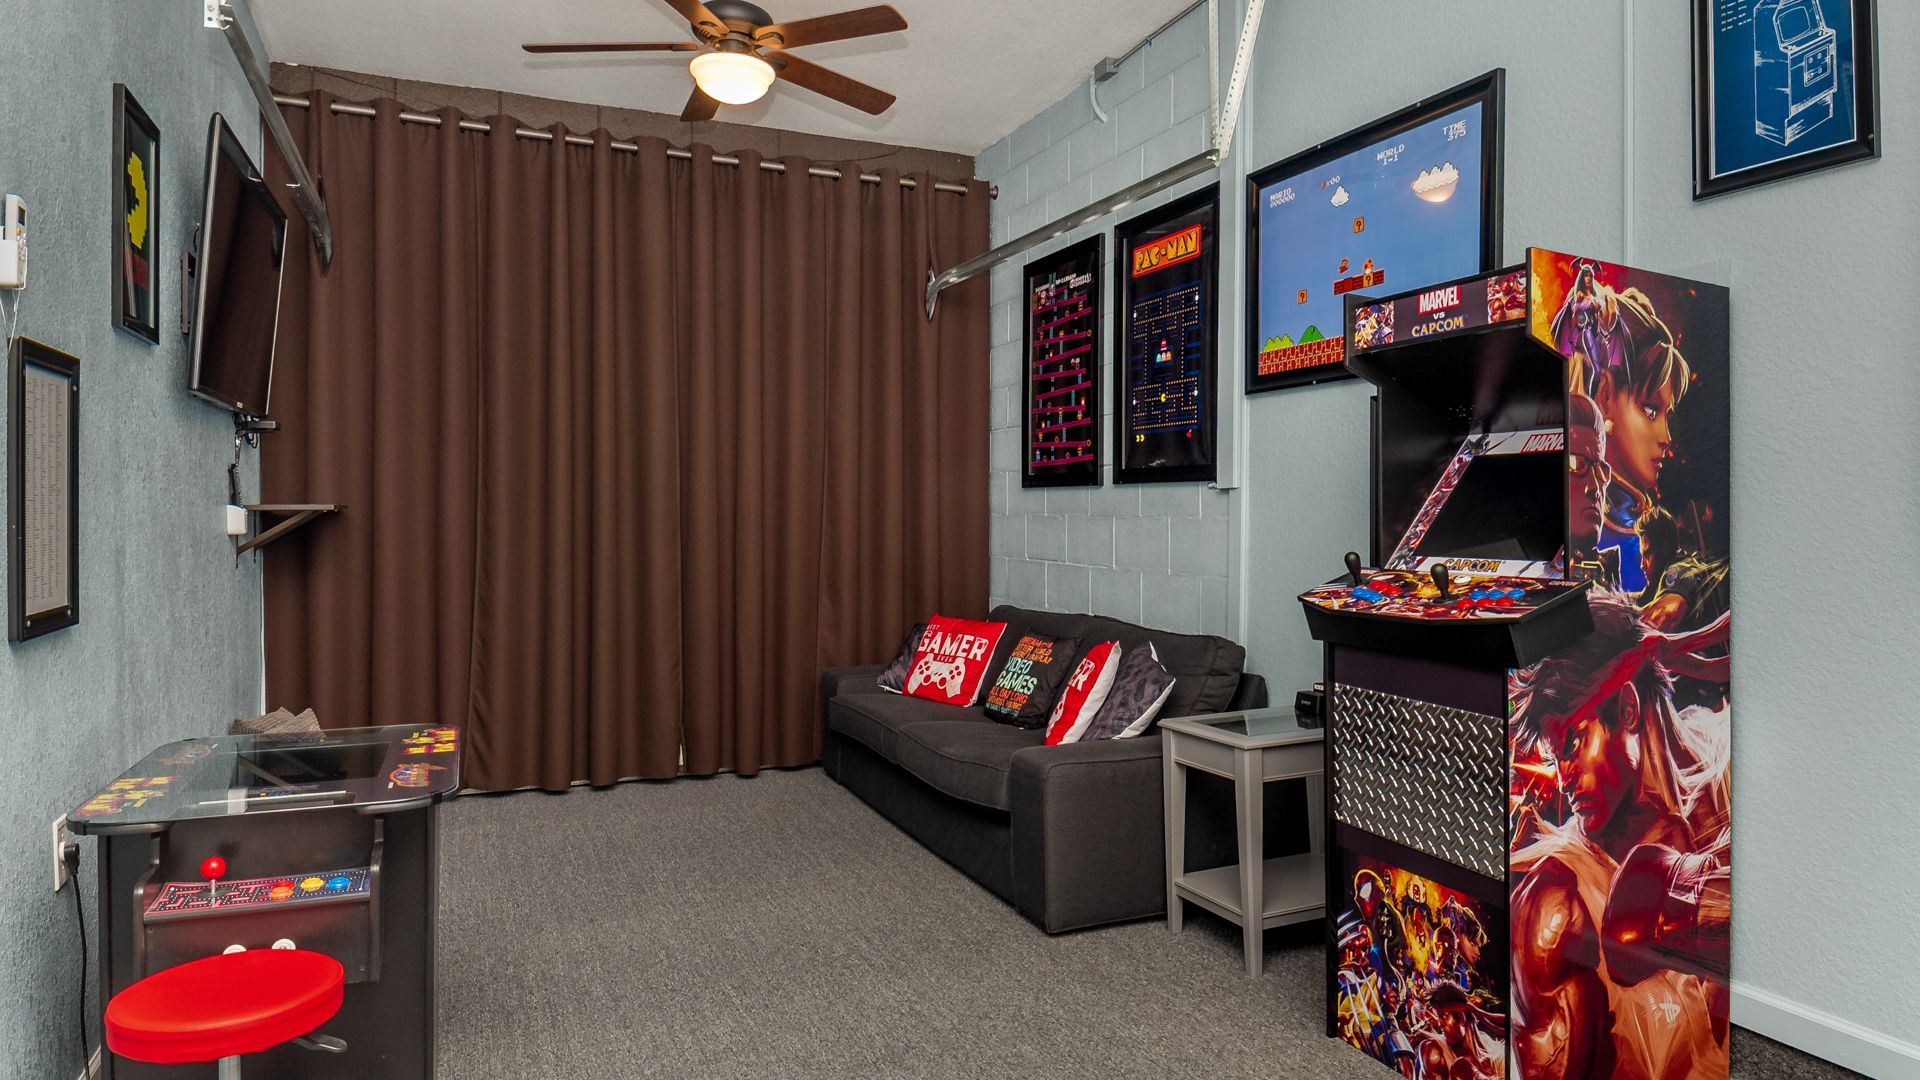 Game Room.  Marvel Video Arcade with multiple game options. Pacman Video Arcade with multiple game options.